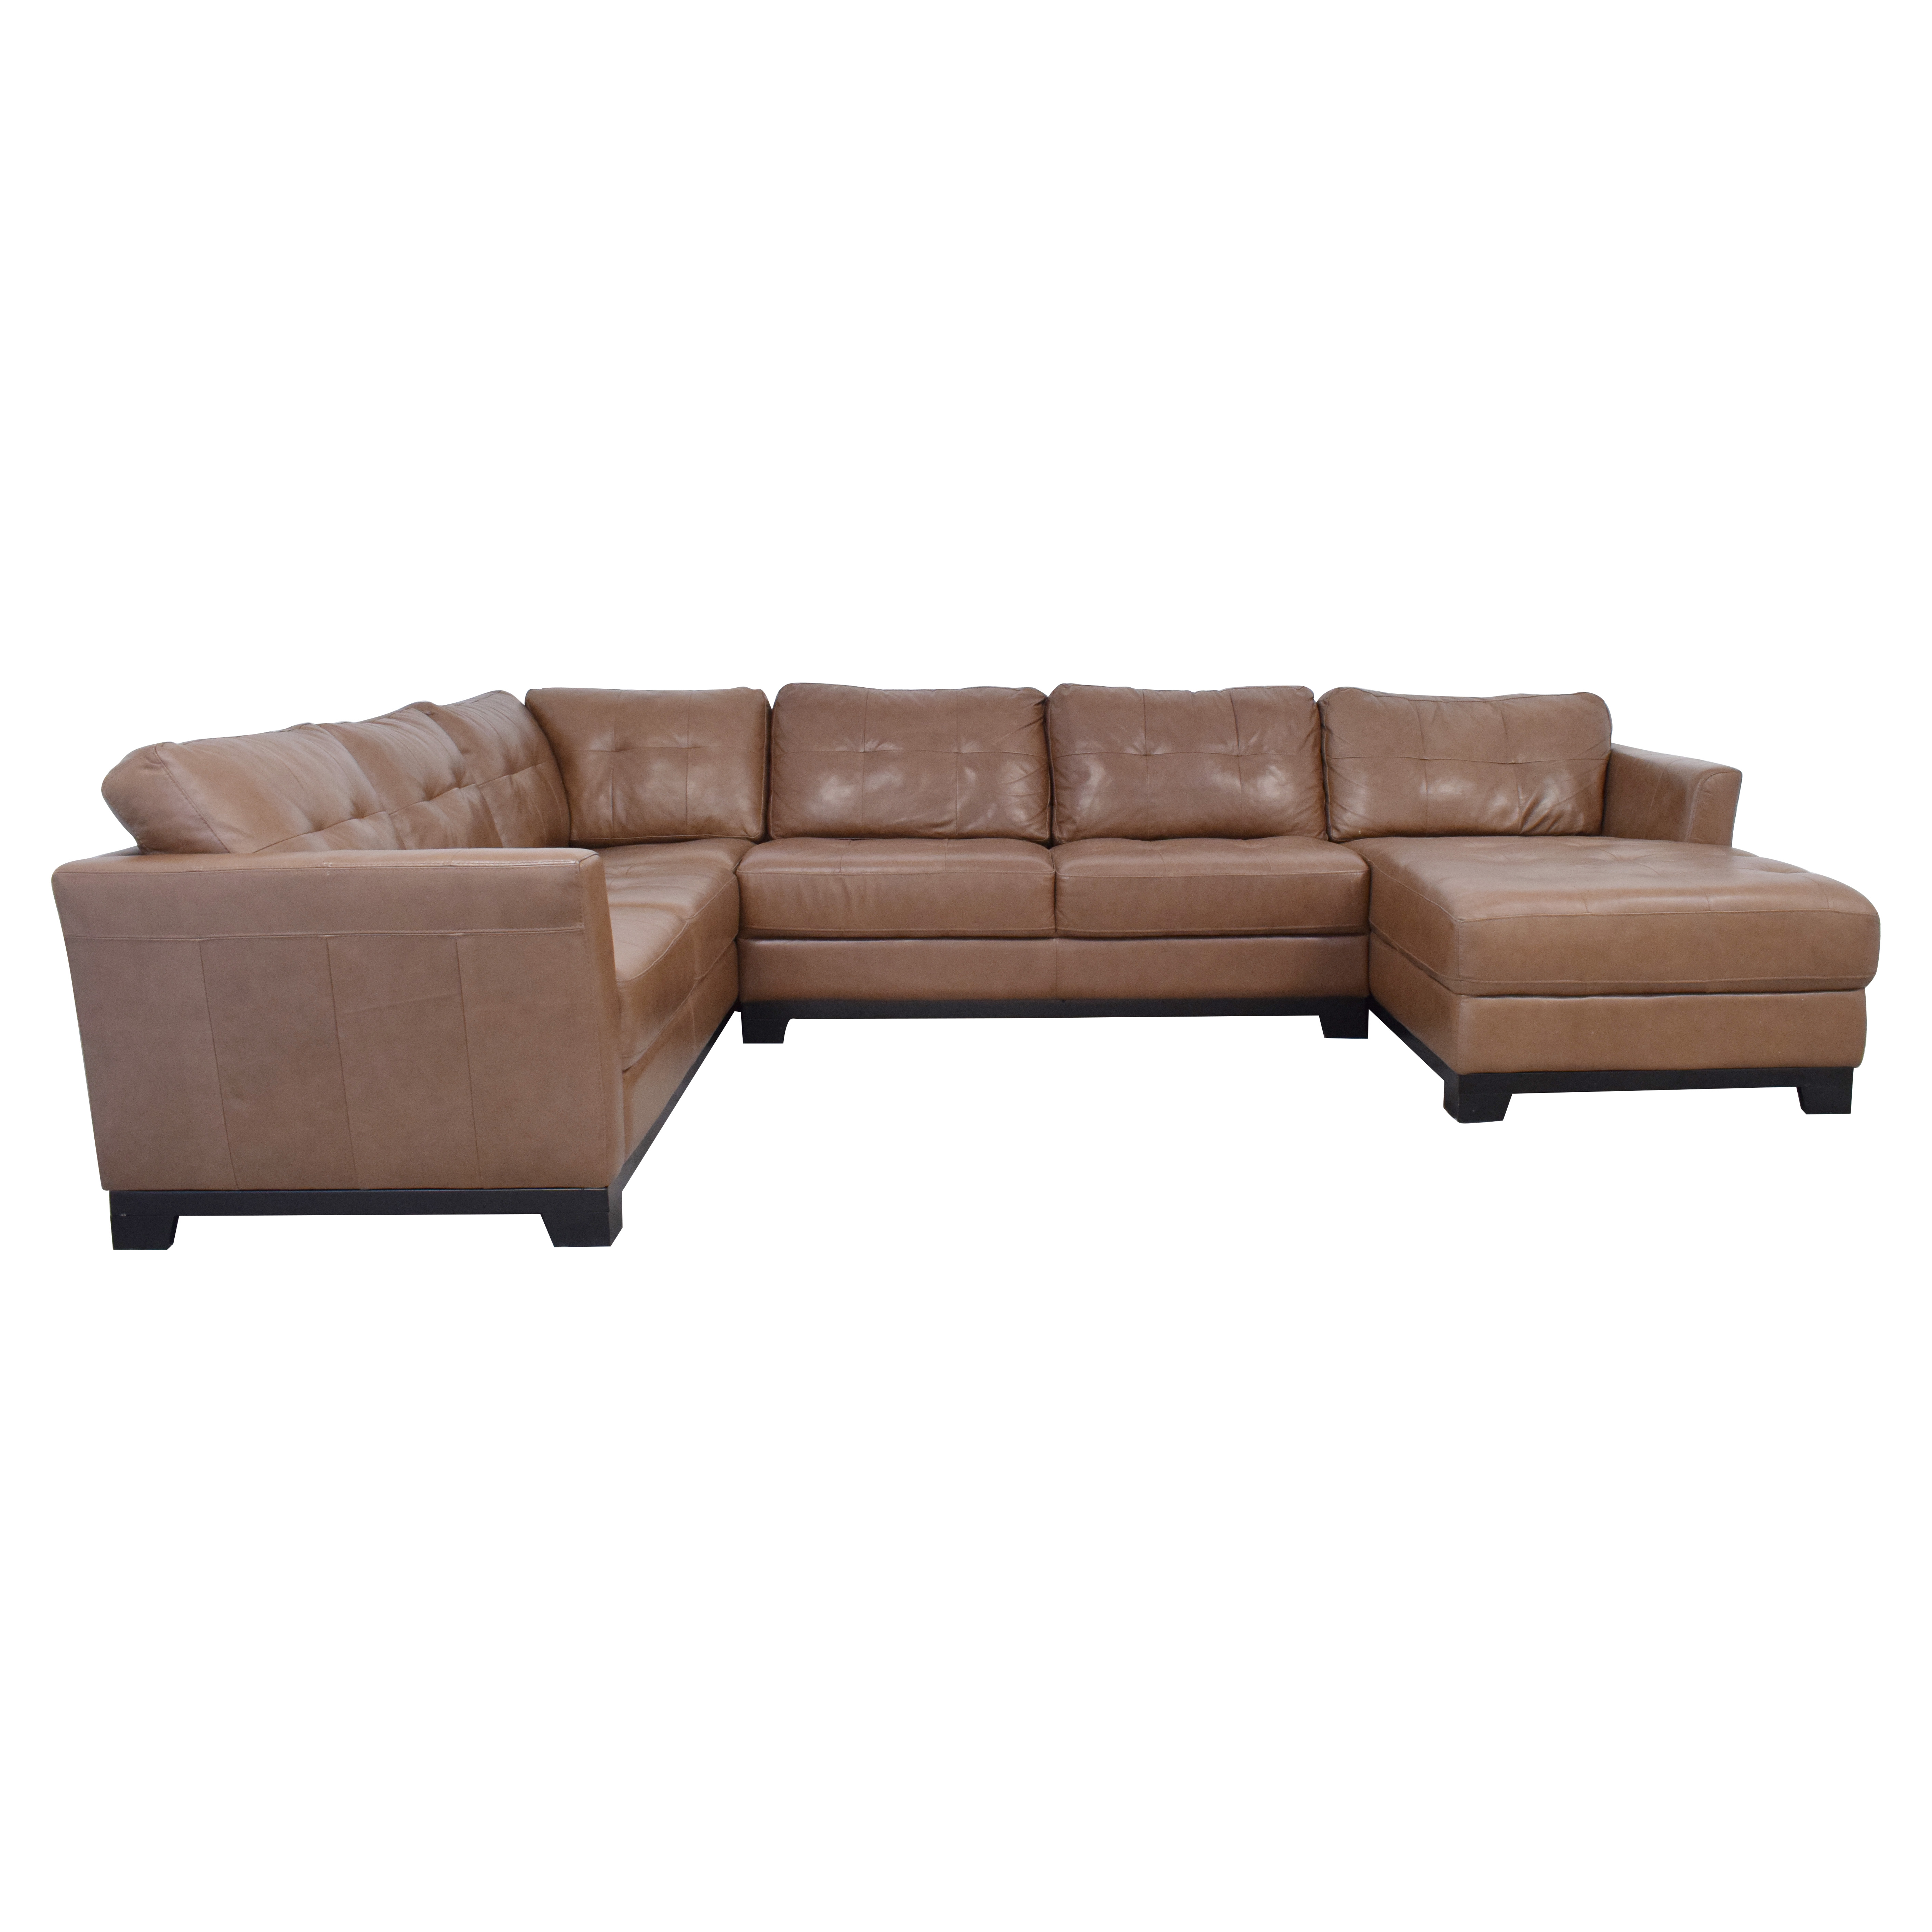 Chateau d'Ax Chateau d'Ax Sectional Sofa with Chaise used